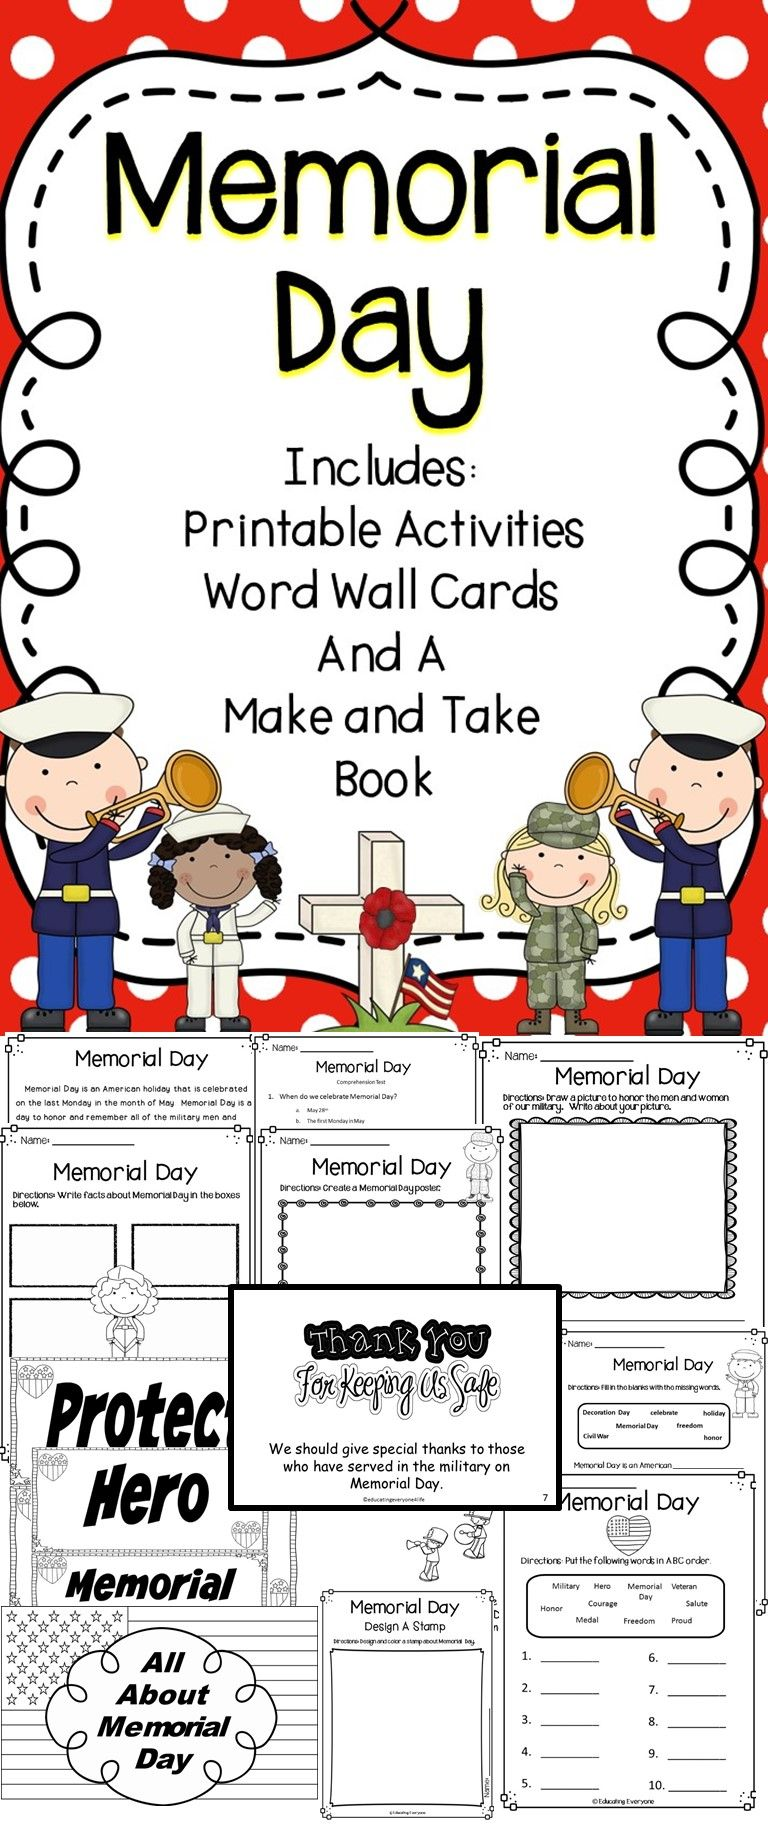 Memorial Day This Activity Pack Includes Fun And Engaging Activities All About Memorial Day Educa Memorial Day Kindergarten Worksheets Classroom Activities [ 1824 x 768 Pixel ]